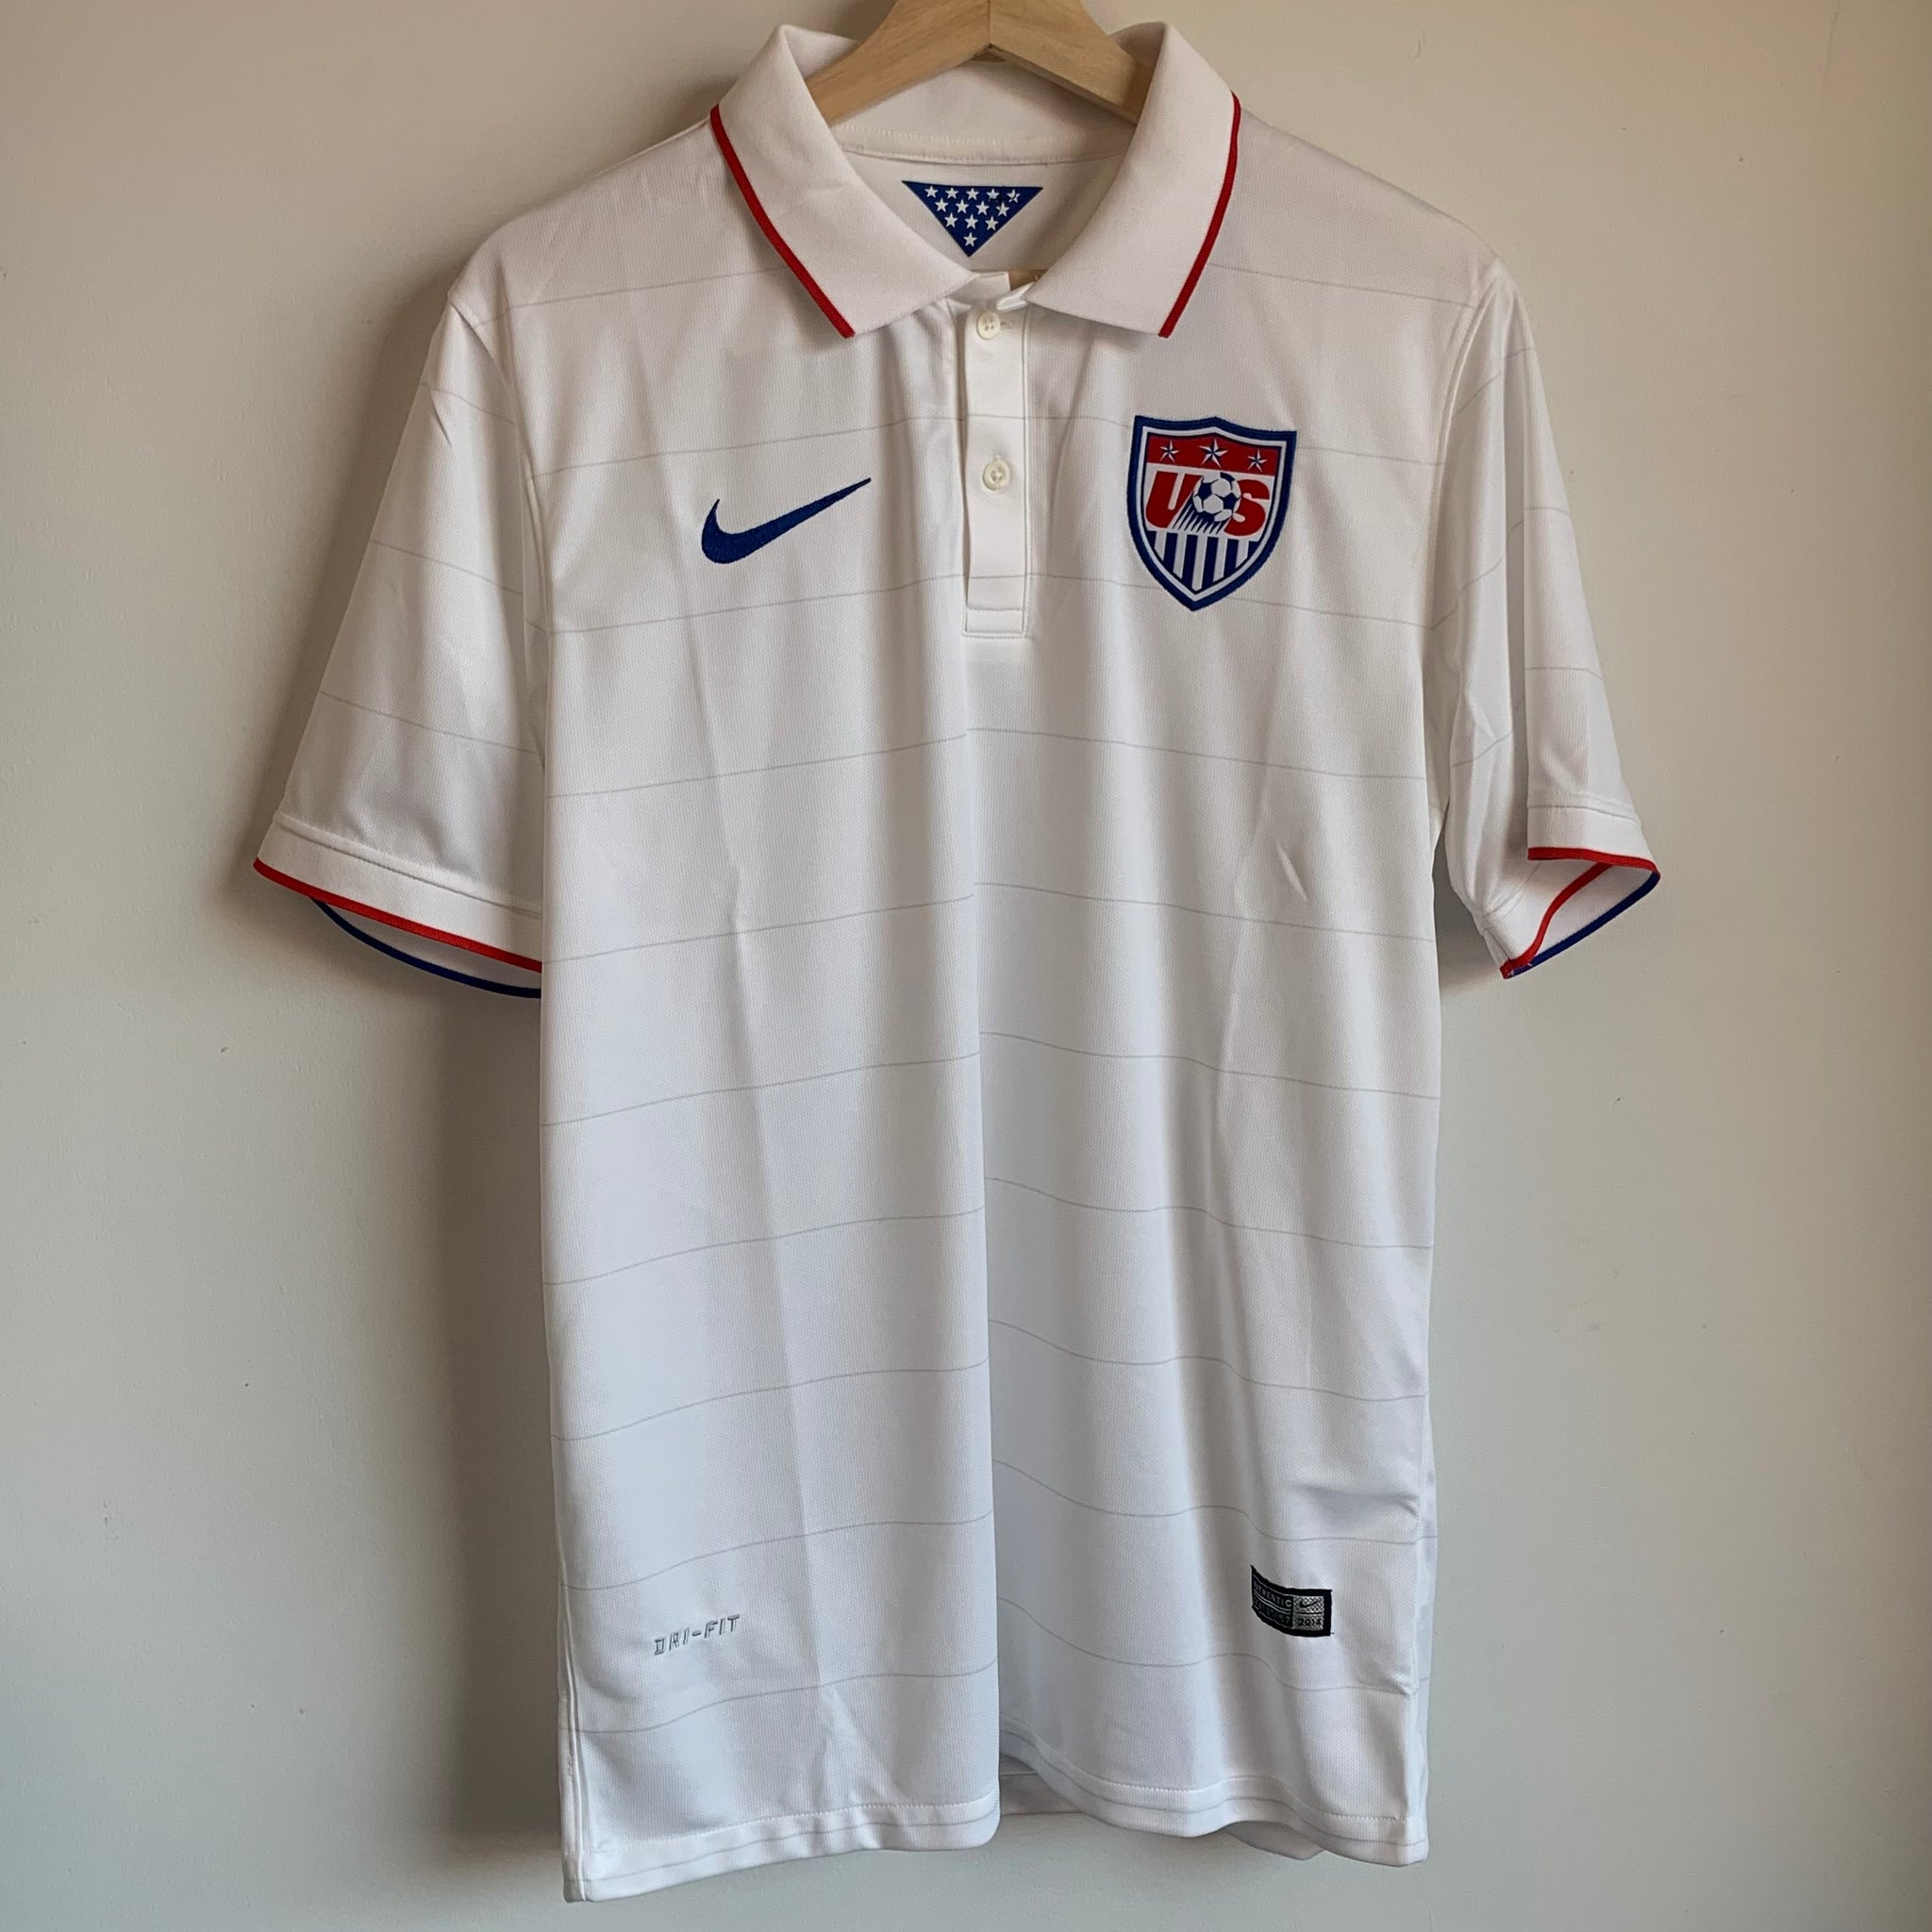 Nike USA Striped White Soccer Jersey